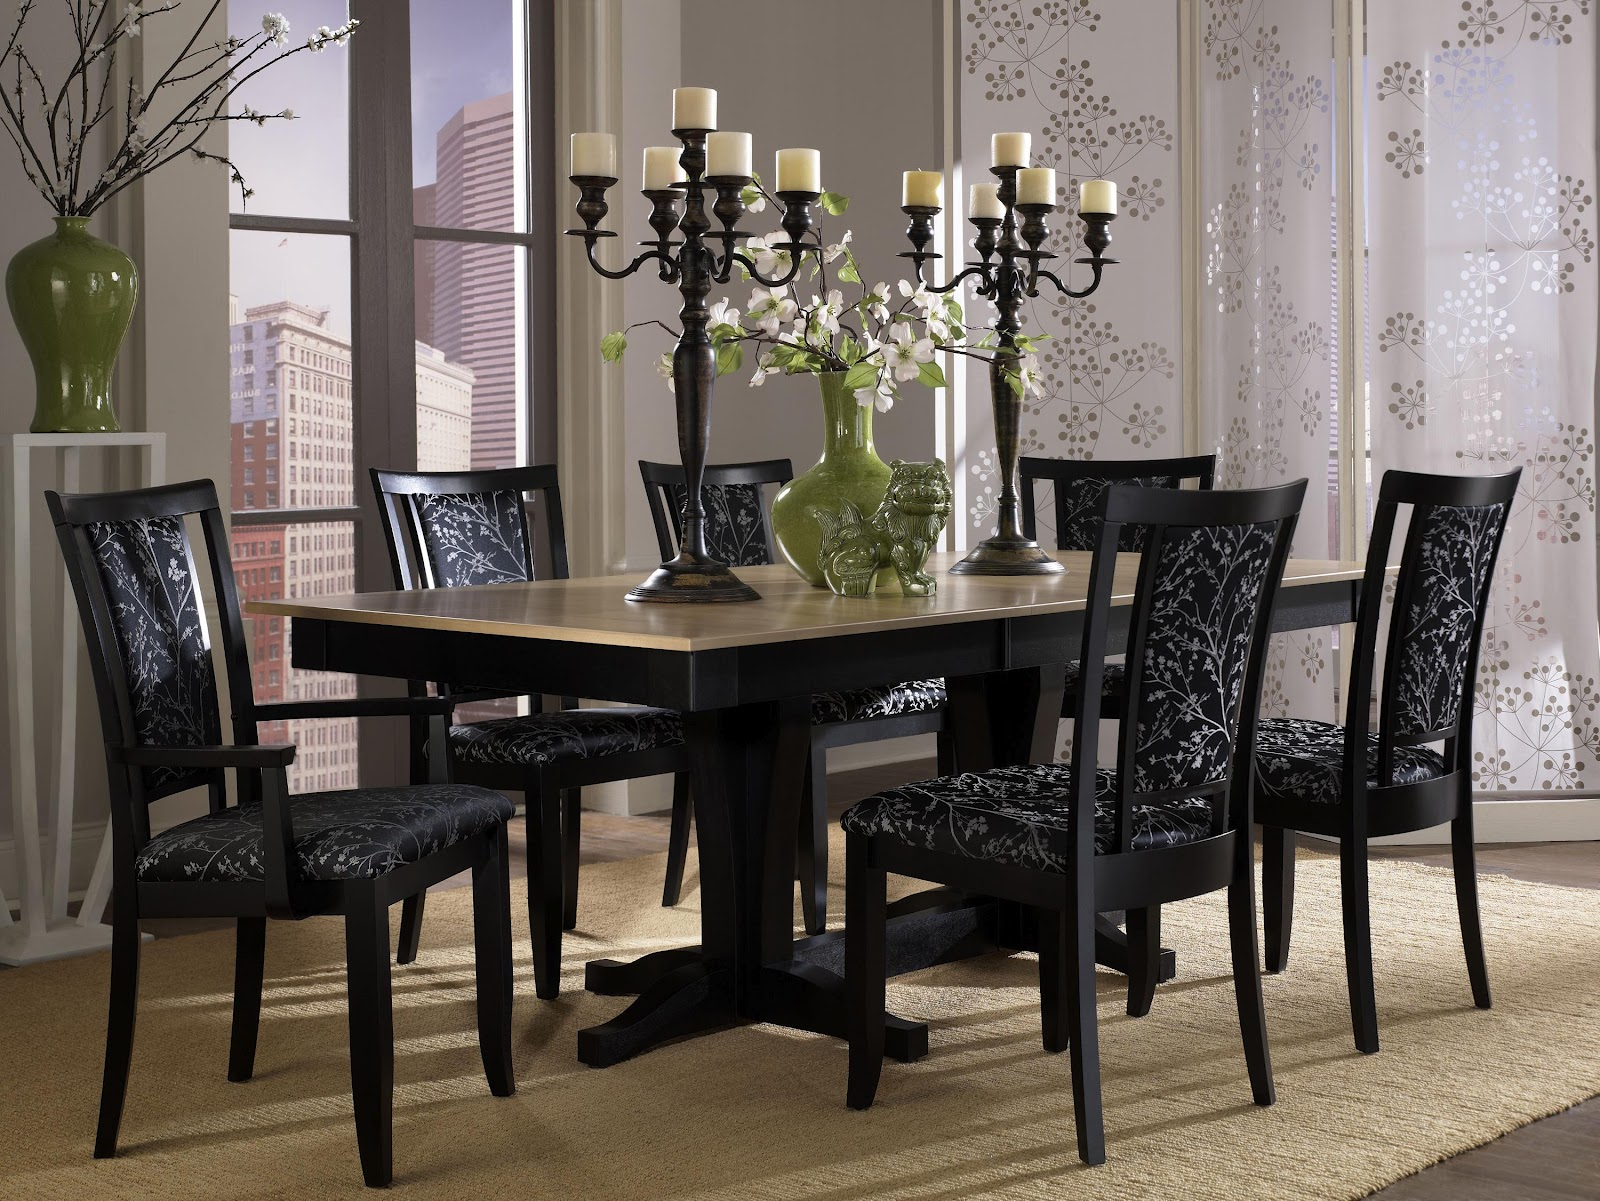 Canadel dining room sets new york dining room unique for Dining room set ideas